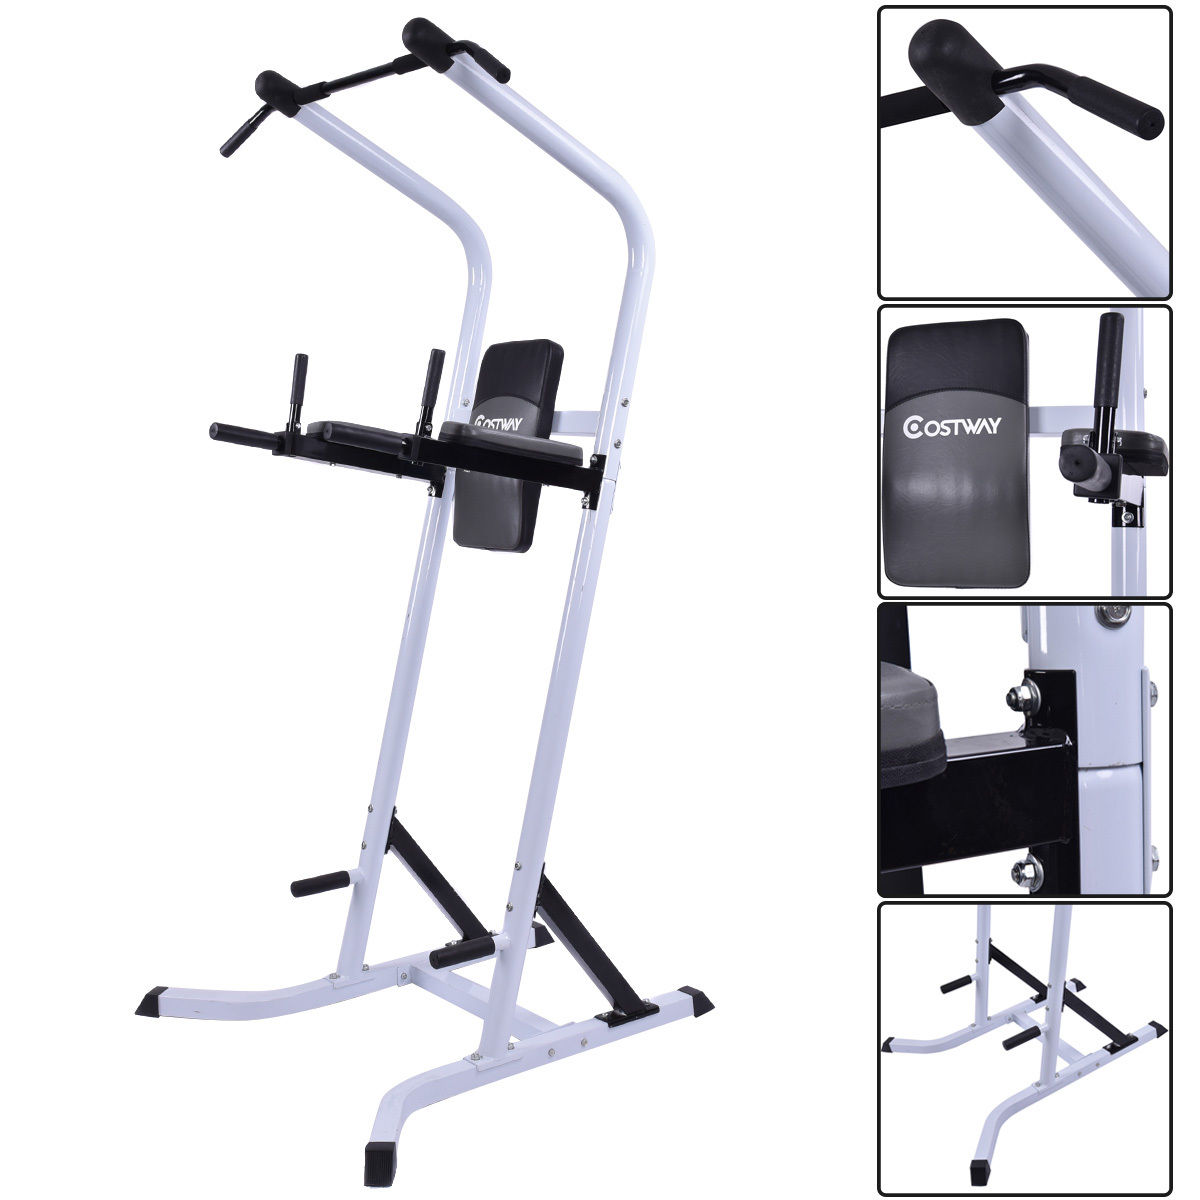 Costway Chin Up Stand Pull Up Bar Dip Power Tower Home Gym Fitness Workout